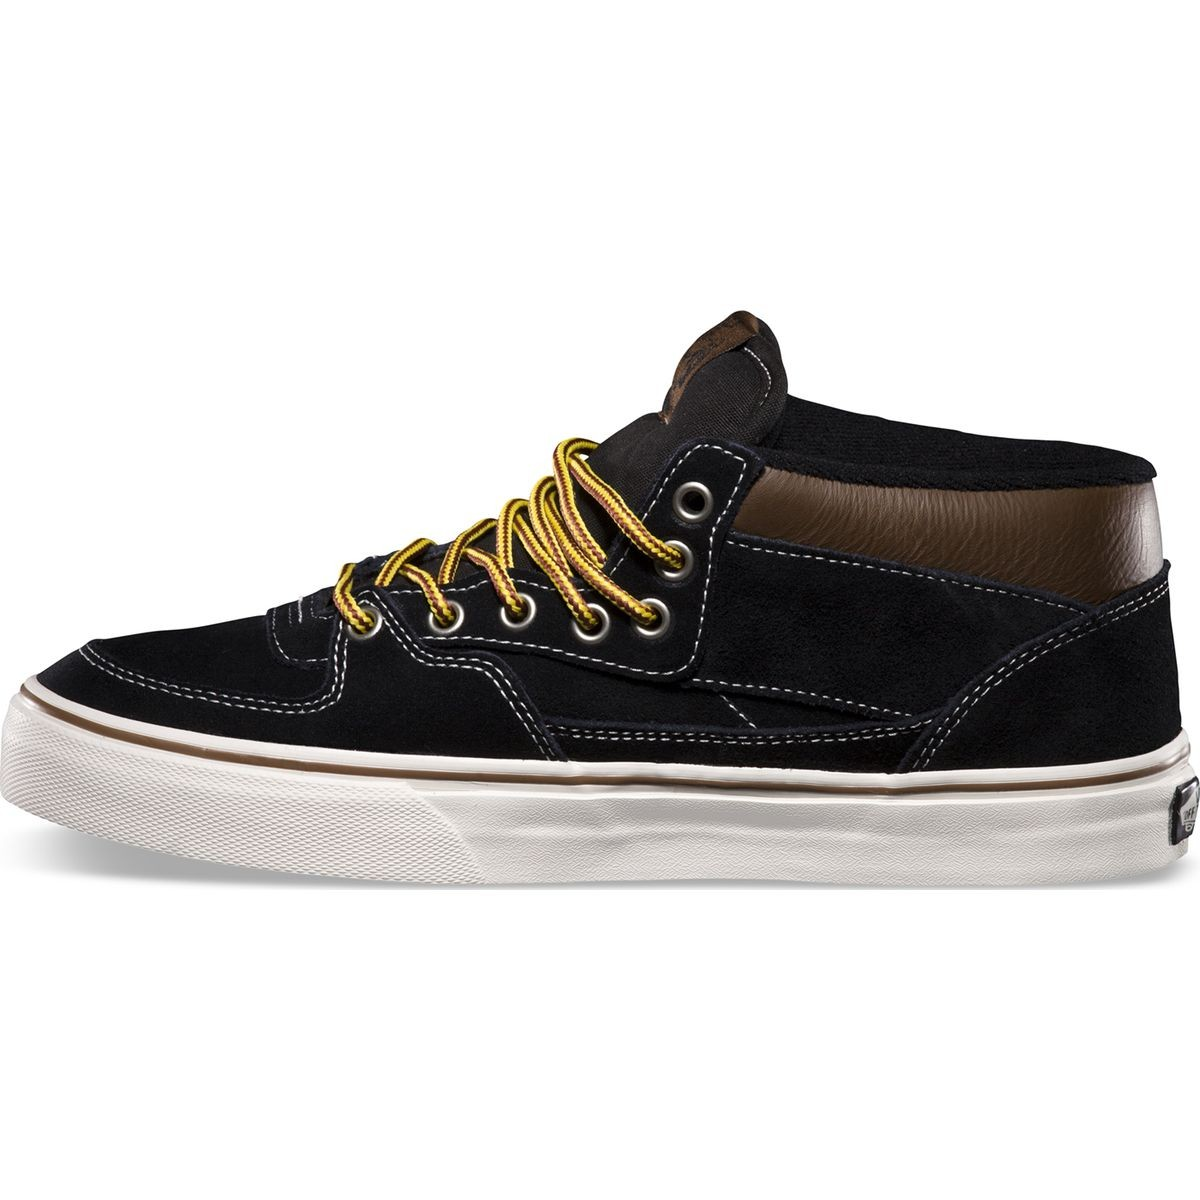 66a9e114d4e07b Vans Hiker Half Cab Shoes - Suede Black - 8.0